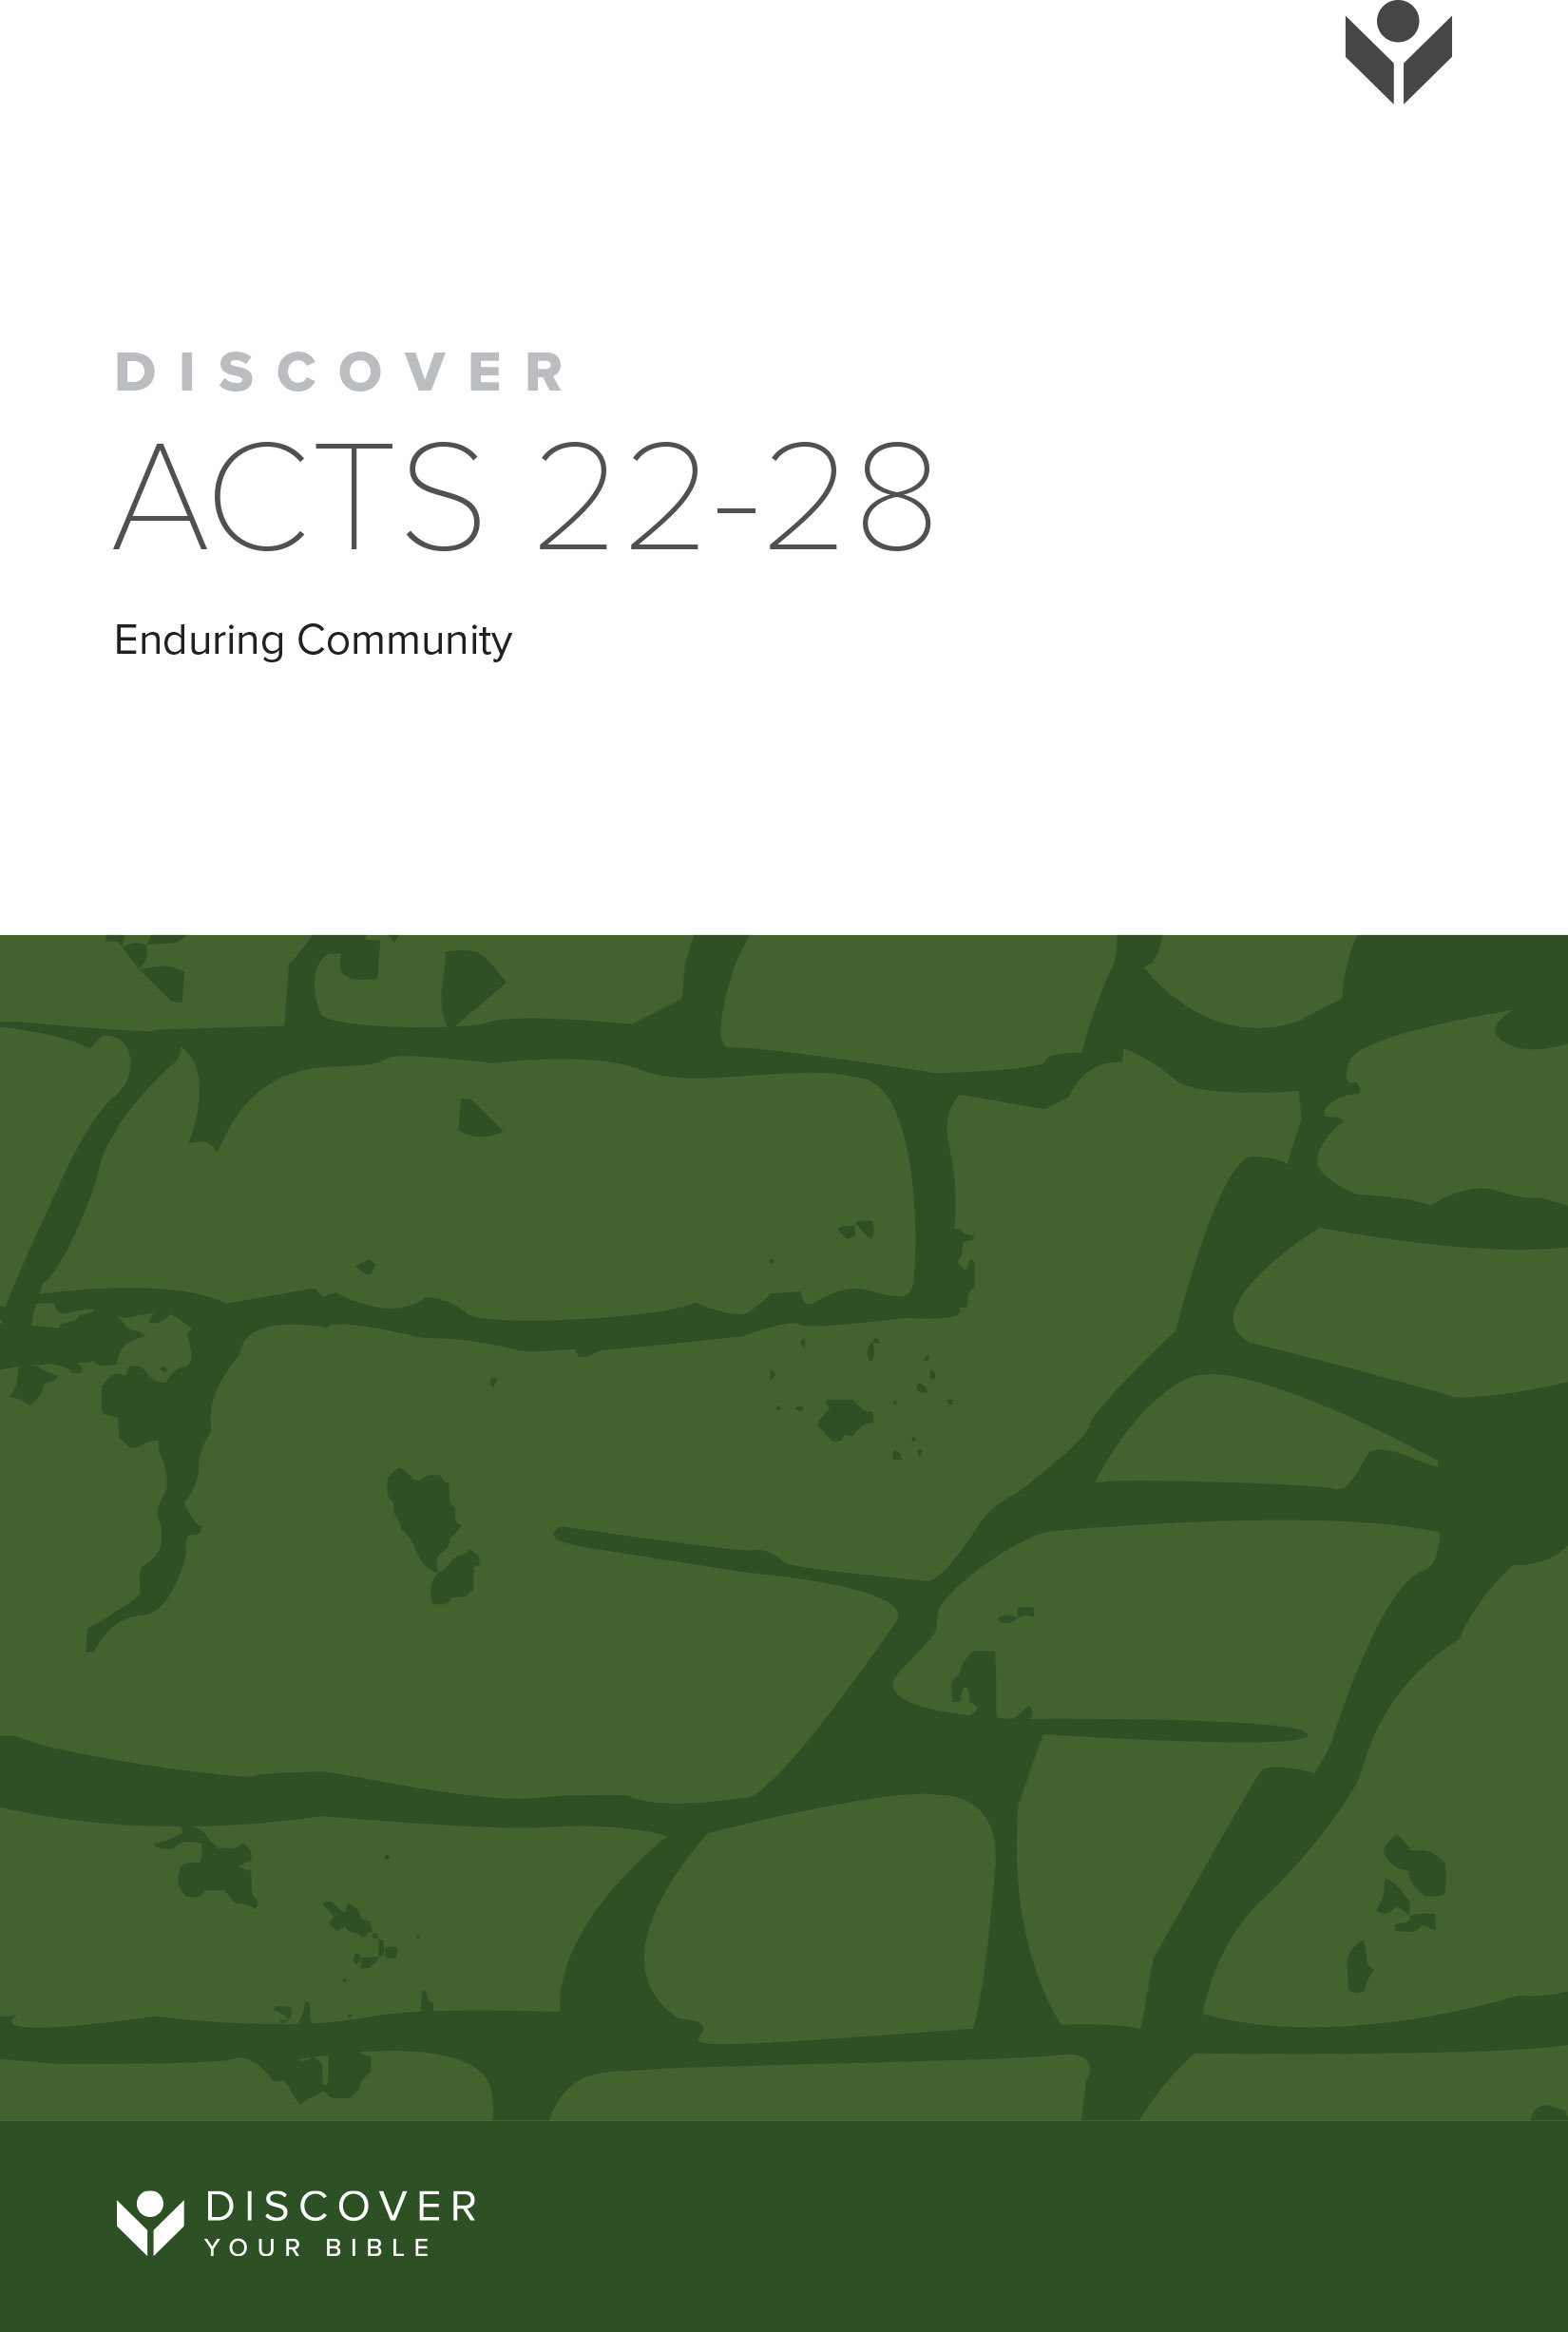 Discover Acts 22-28 Study Guide cover image